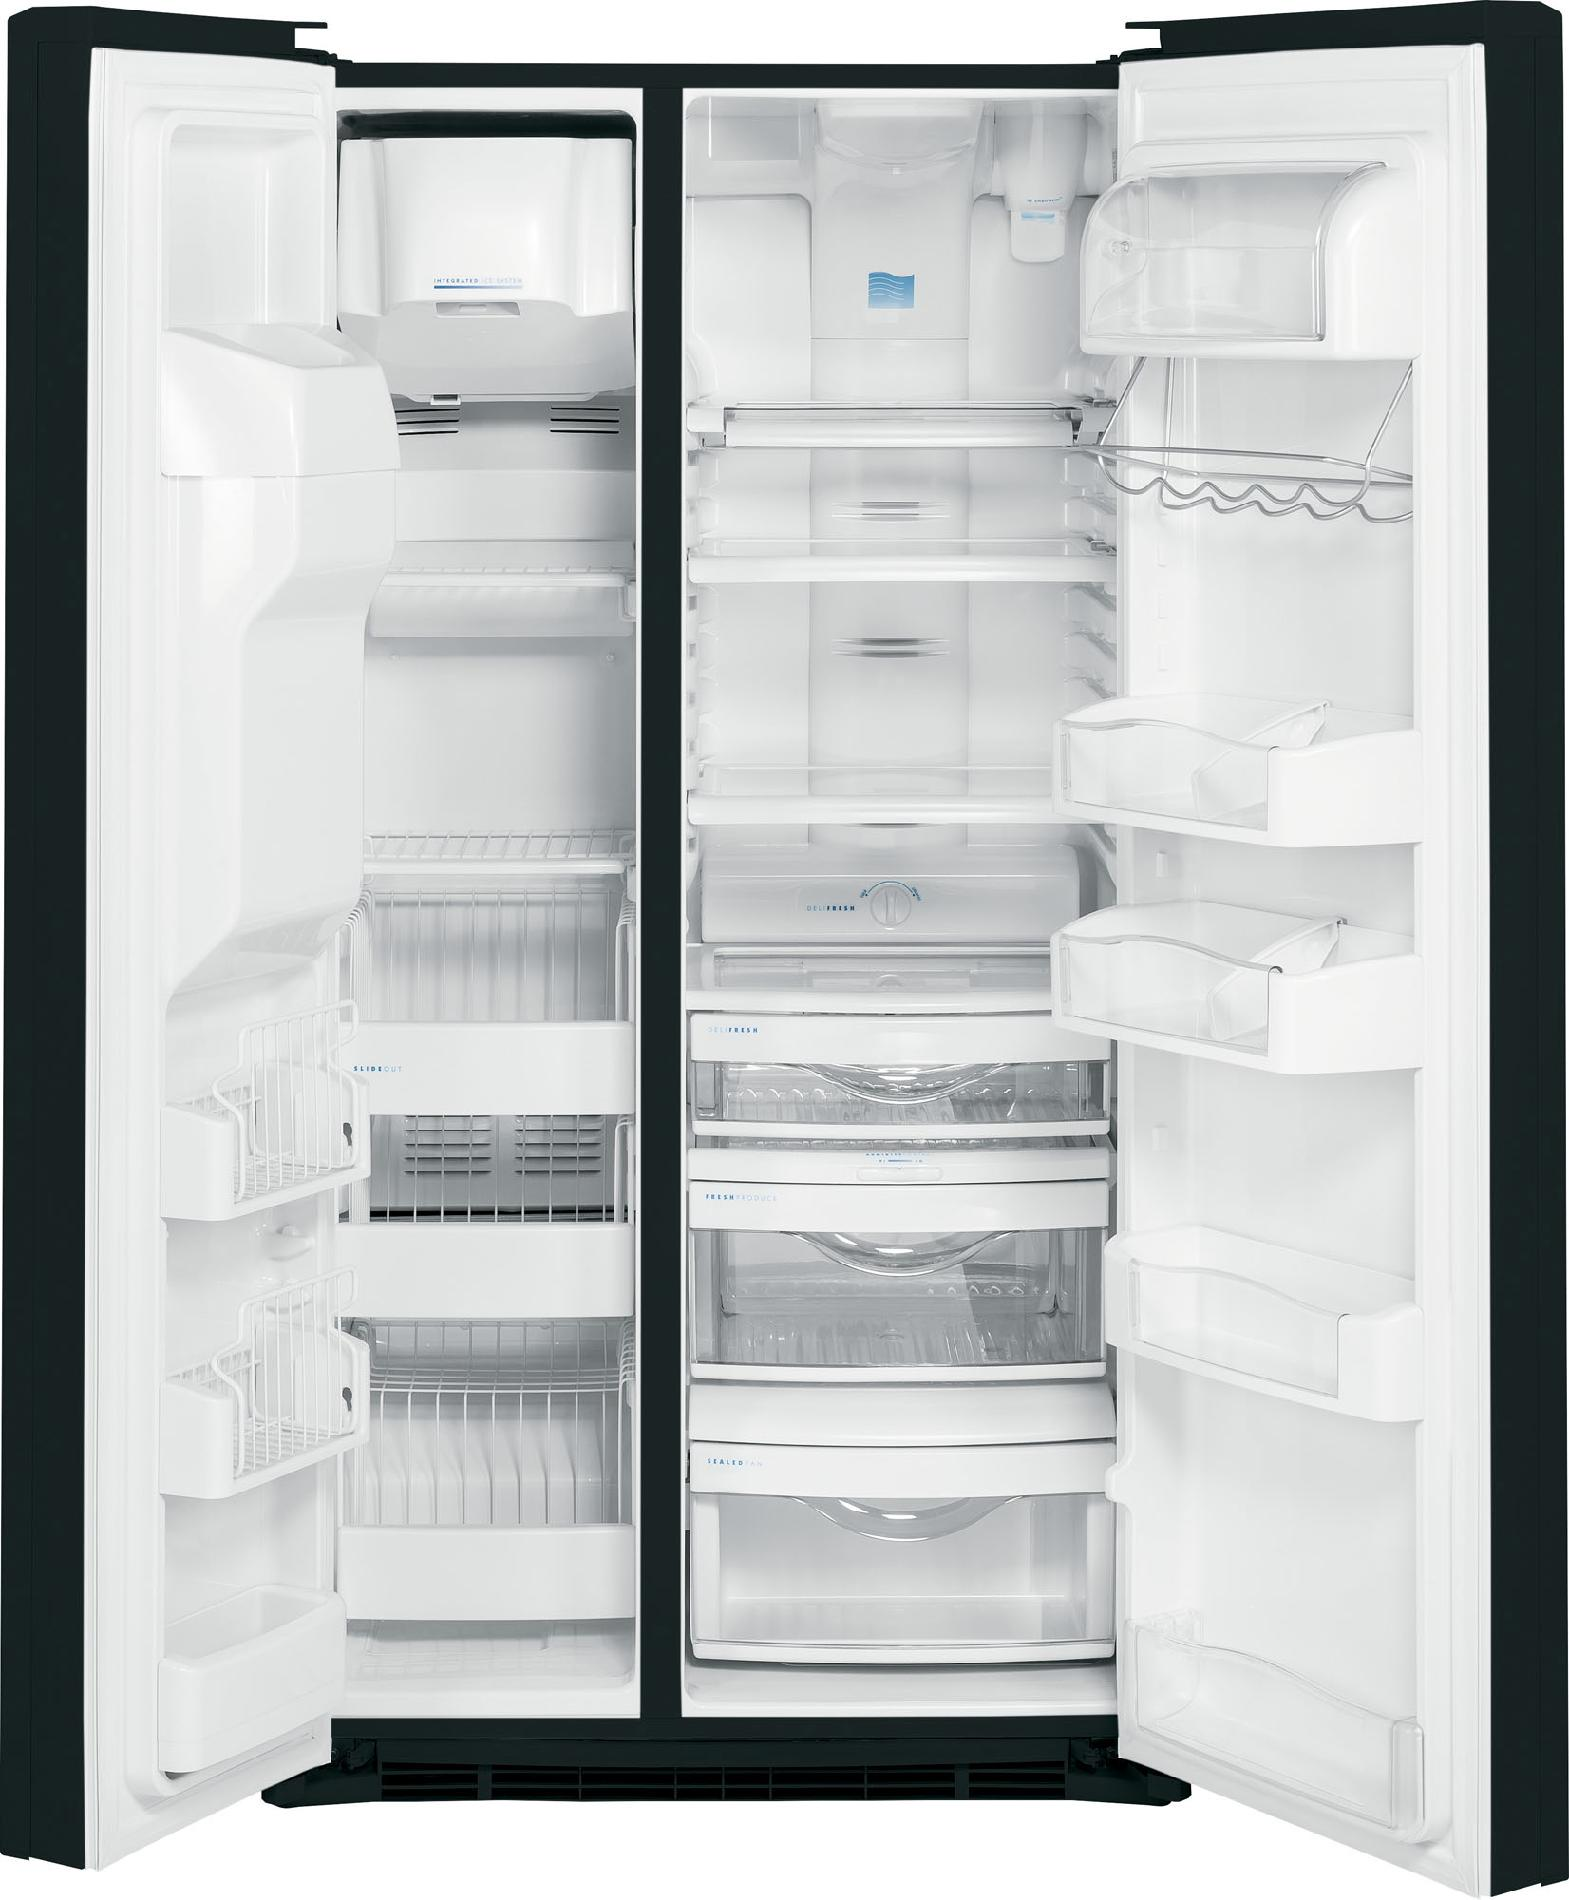 GE Profile 23.3 cu. ft. Counter-Depth Side-by-Side Refrigerator - Panel Ready